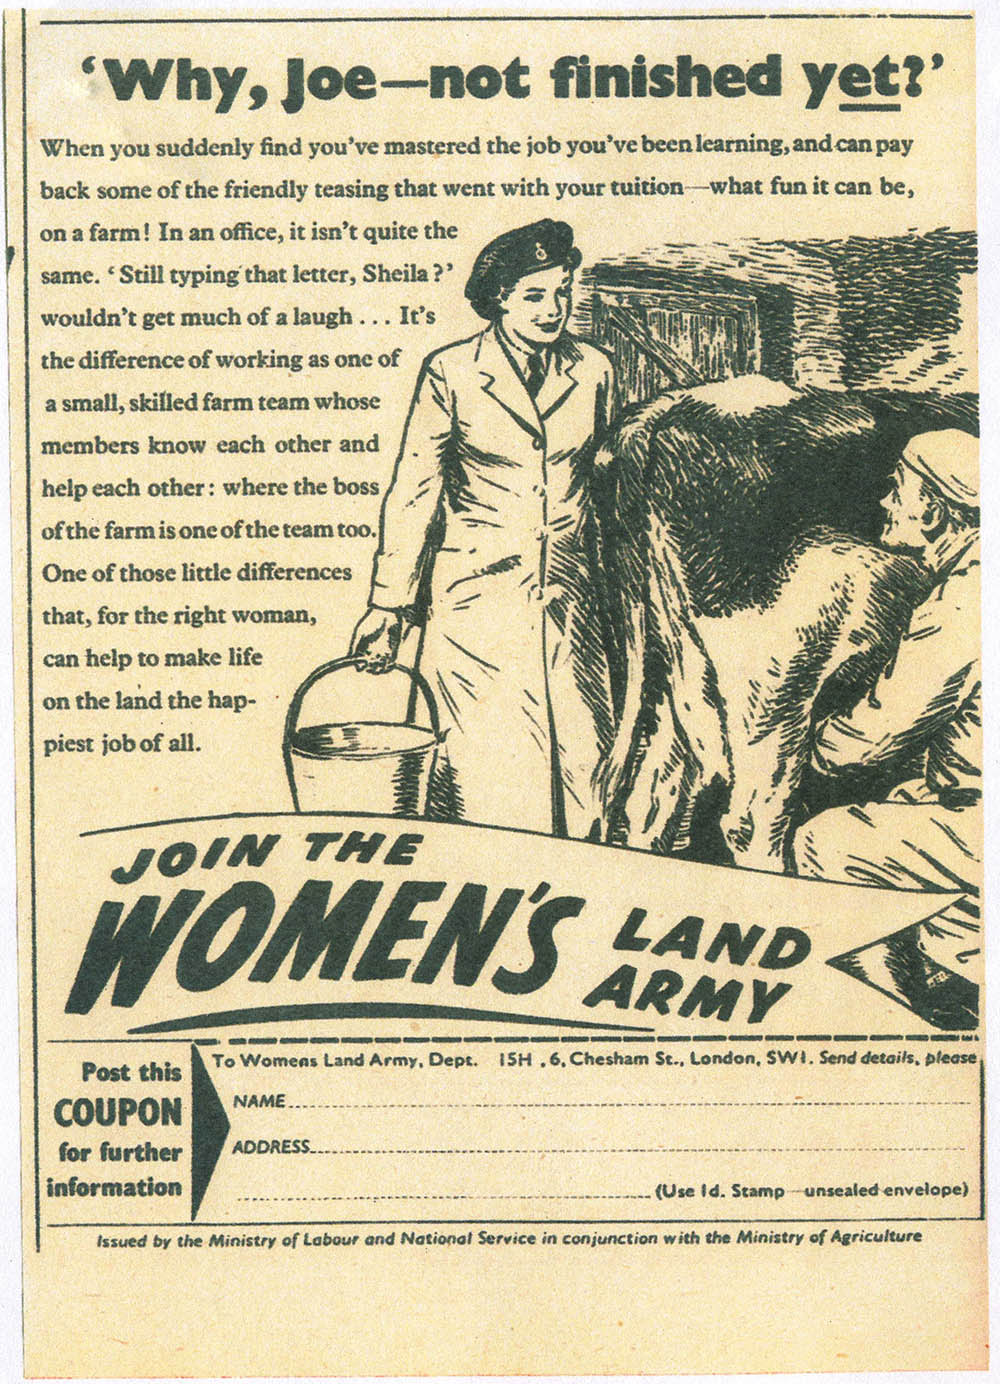 Why, Joe - not finished yet? Source: Bronwen Jones. Women's Land Army newspaper recruitment.